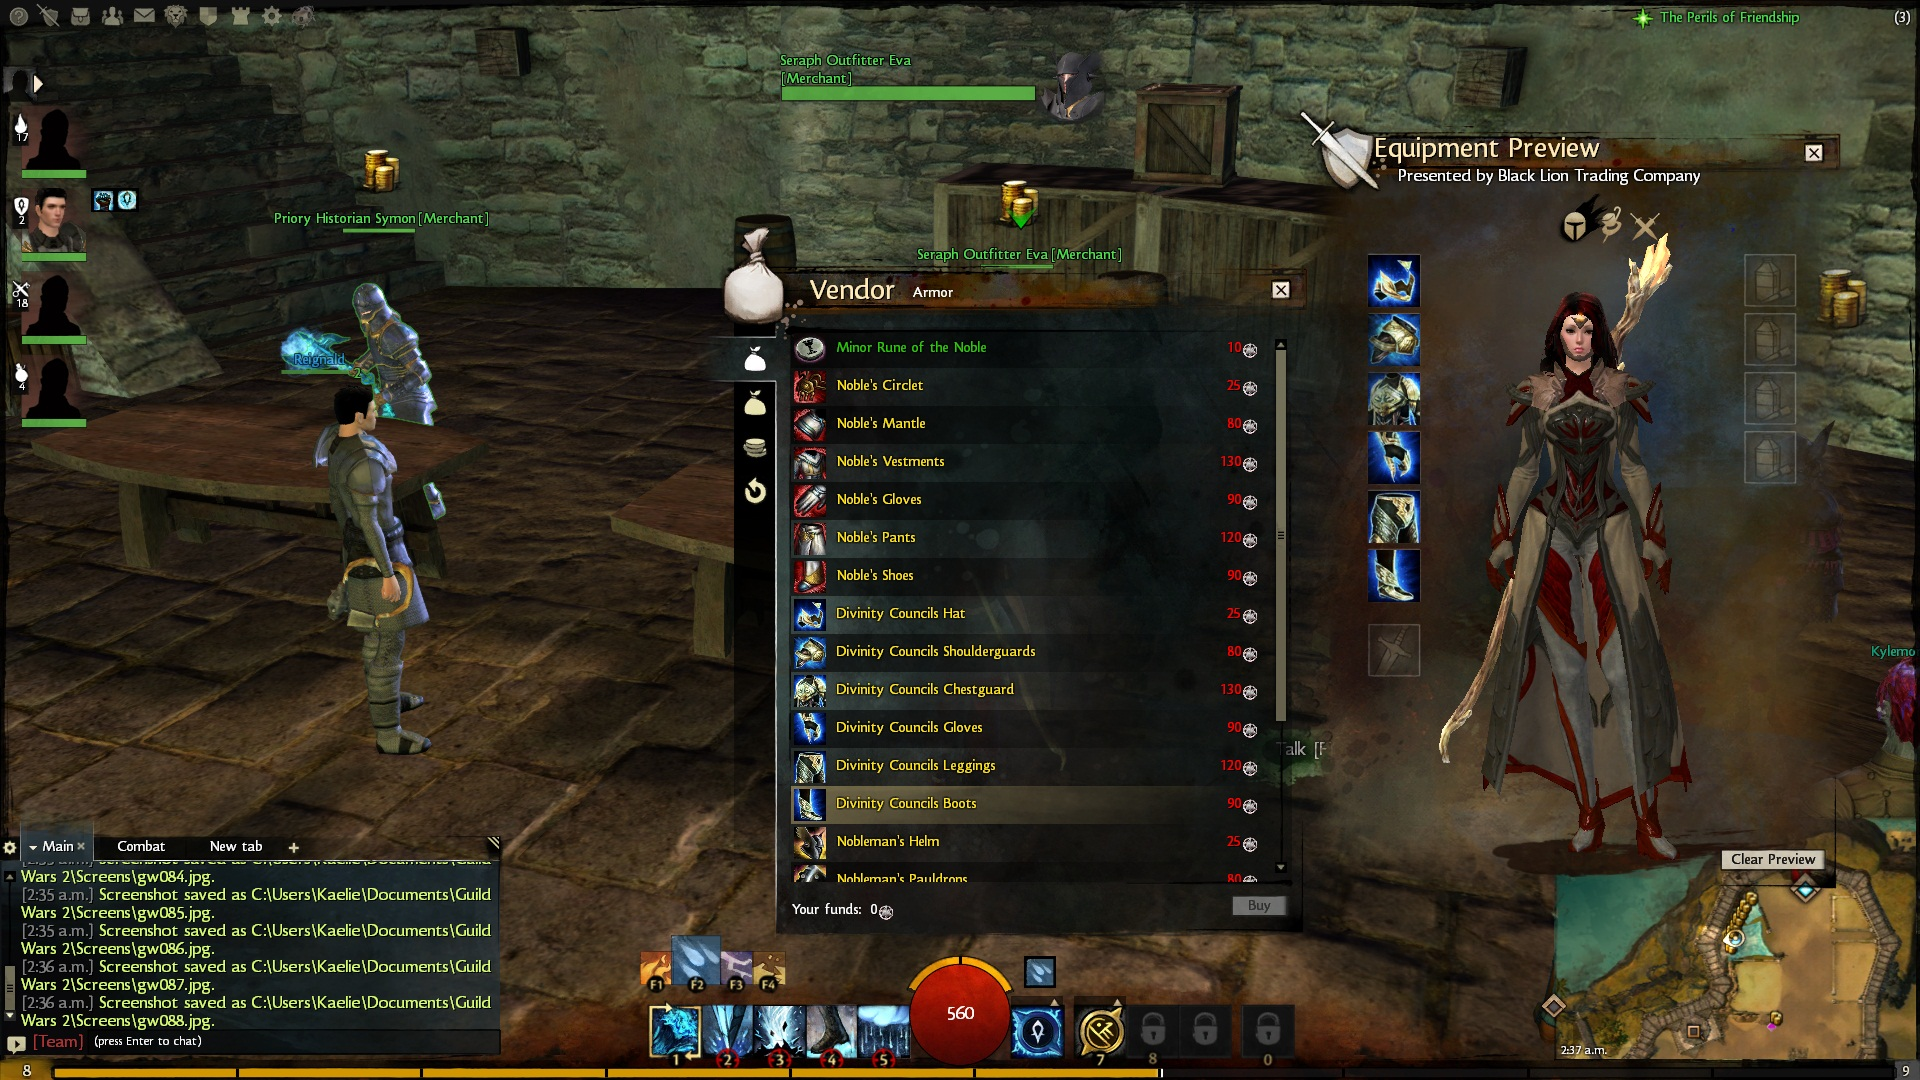 niwaar games link deleted videomedia wars guild